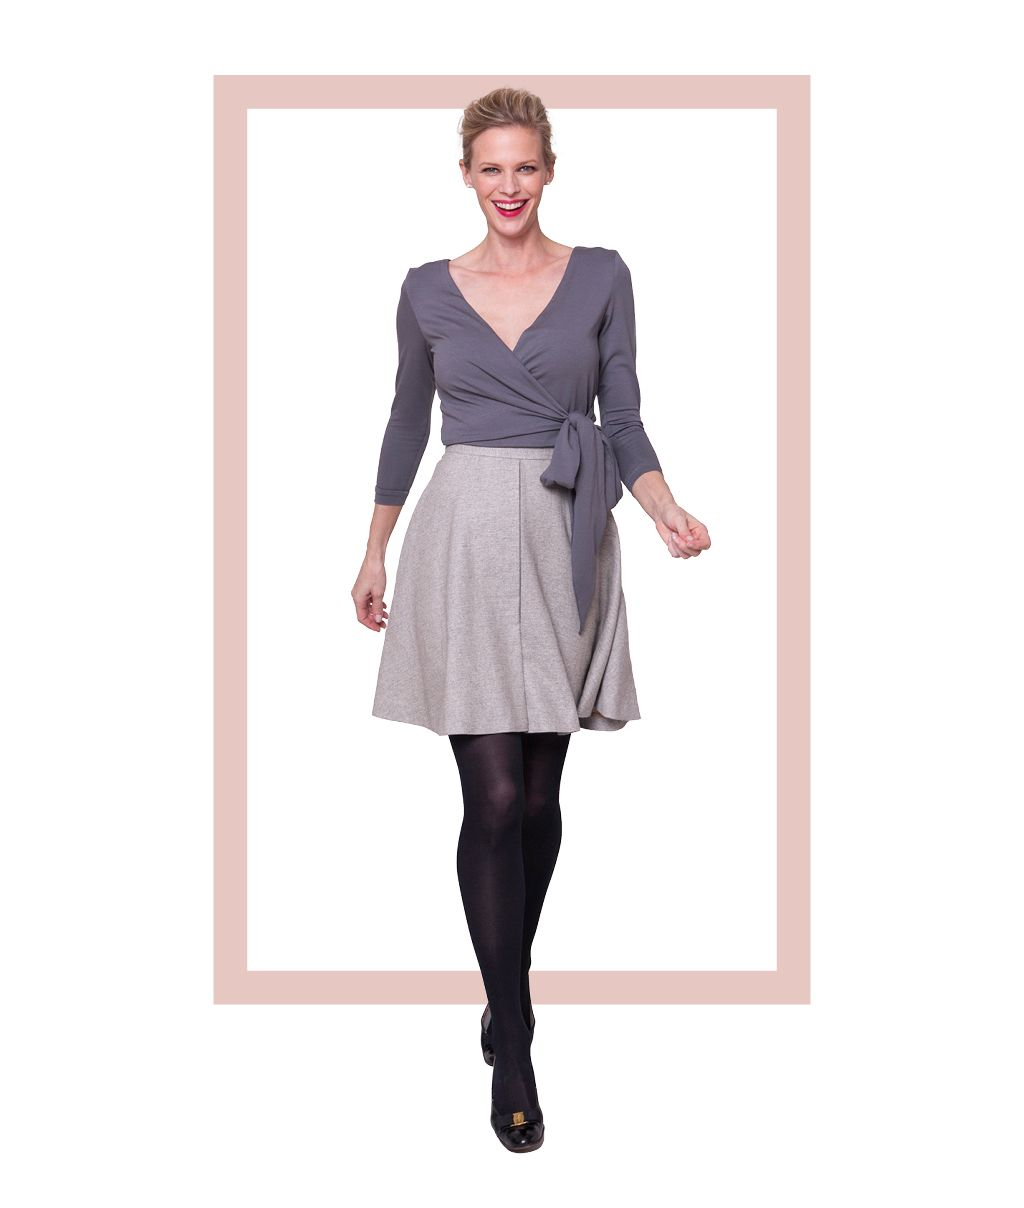 Elmira cardigan and Brooklyn skirt. | Seamwork sewing inspiration ...